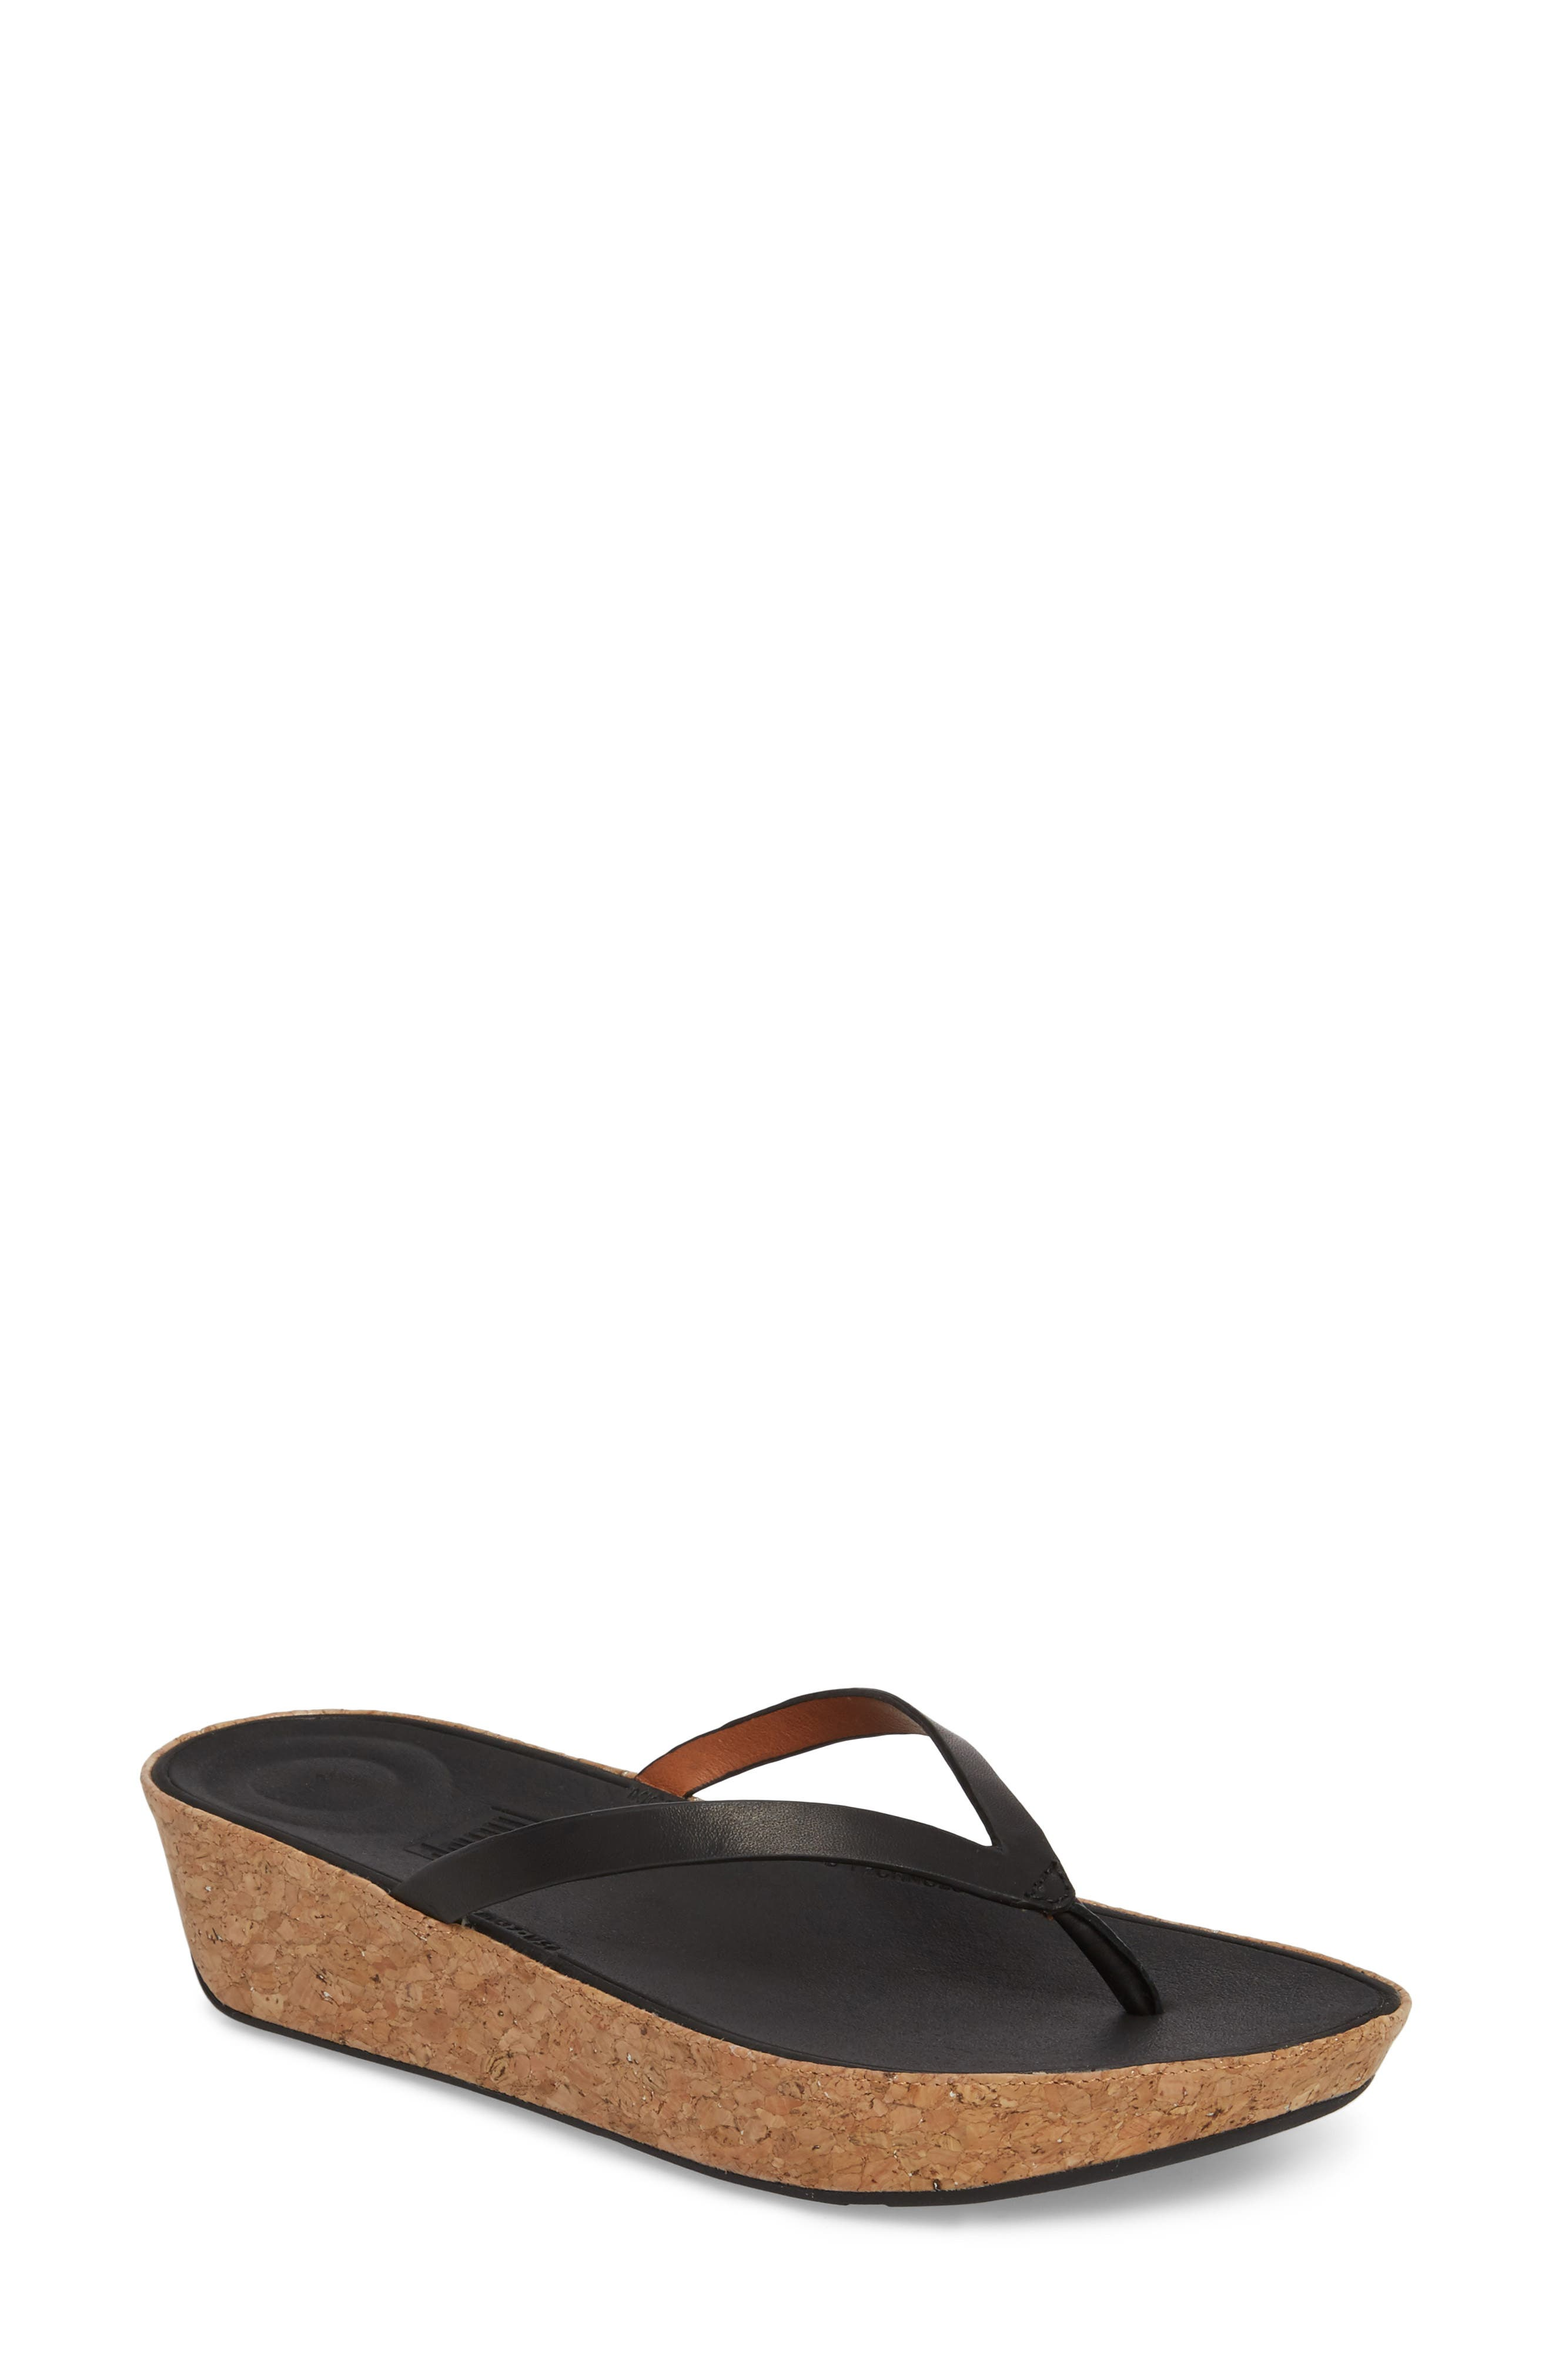 FITFLOP Linny Wedge Flip Flop, Main, color, 001